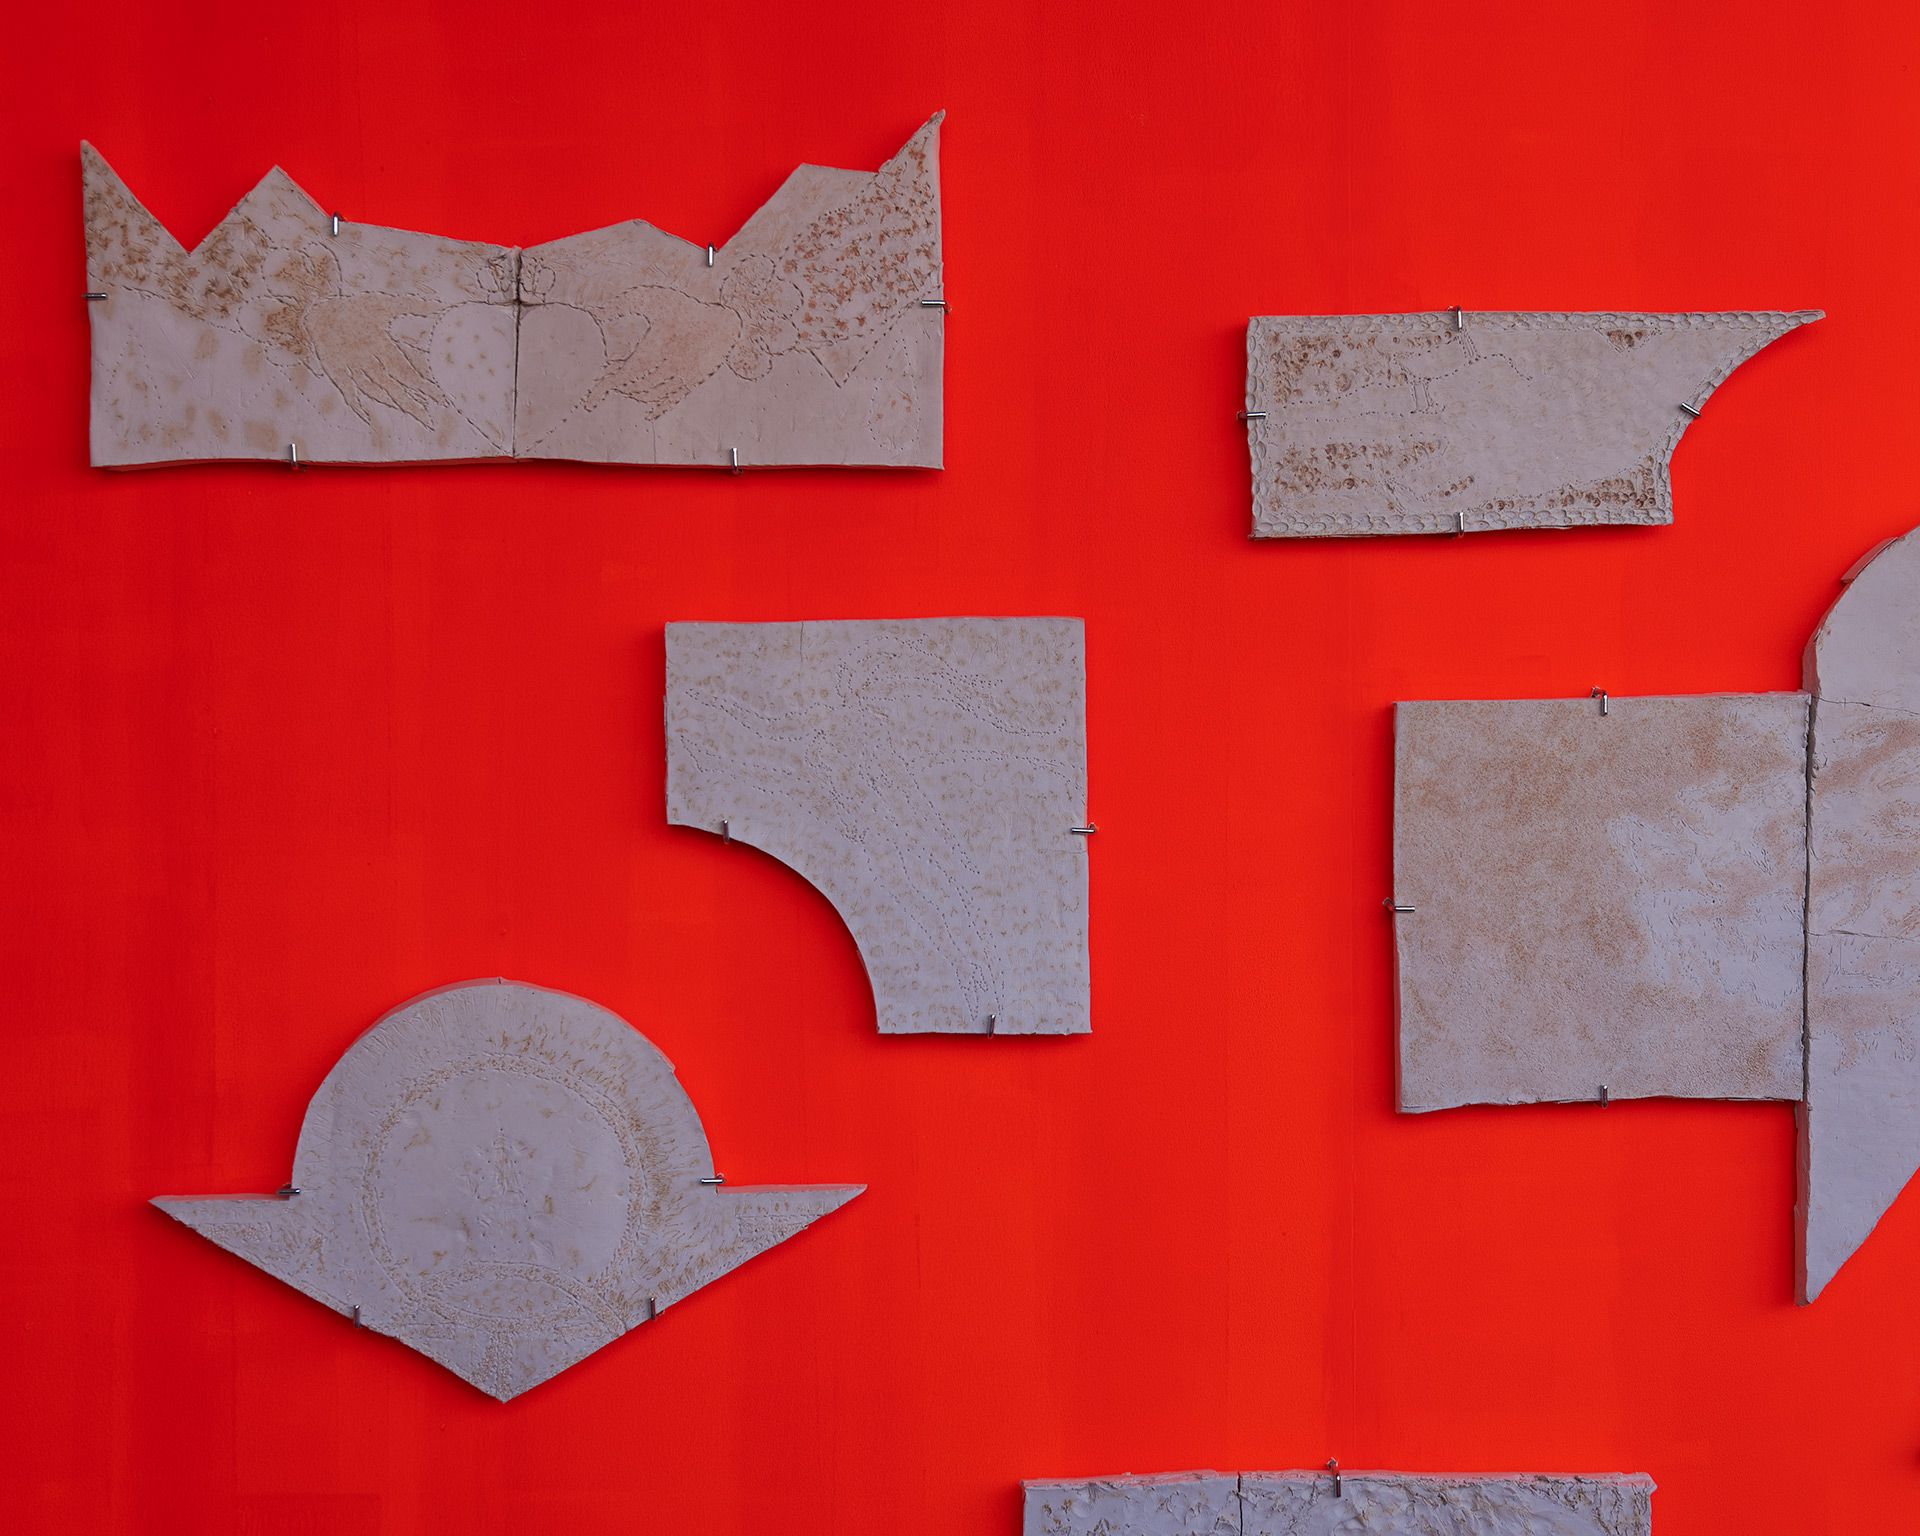 A series of fired ceramic slabs hung on a bright orange wall.